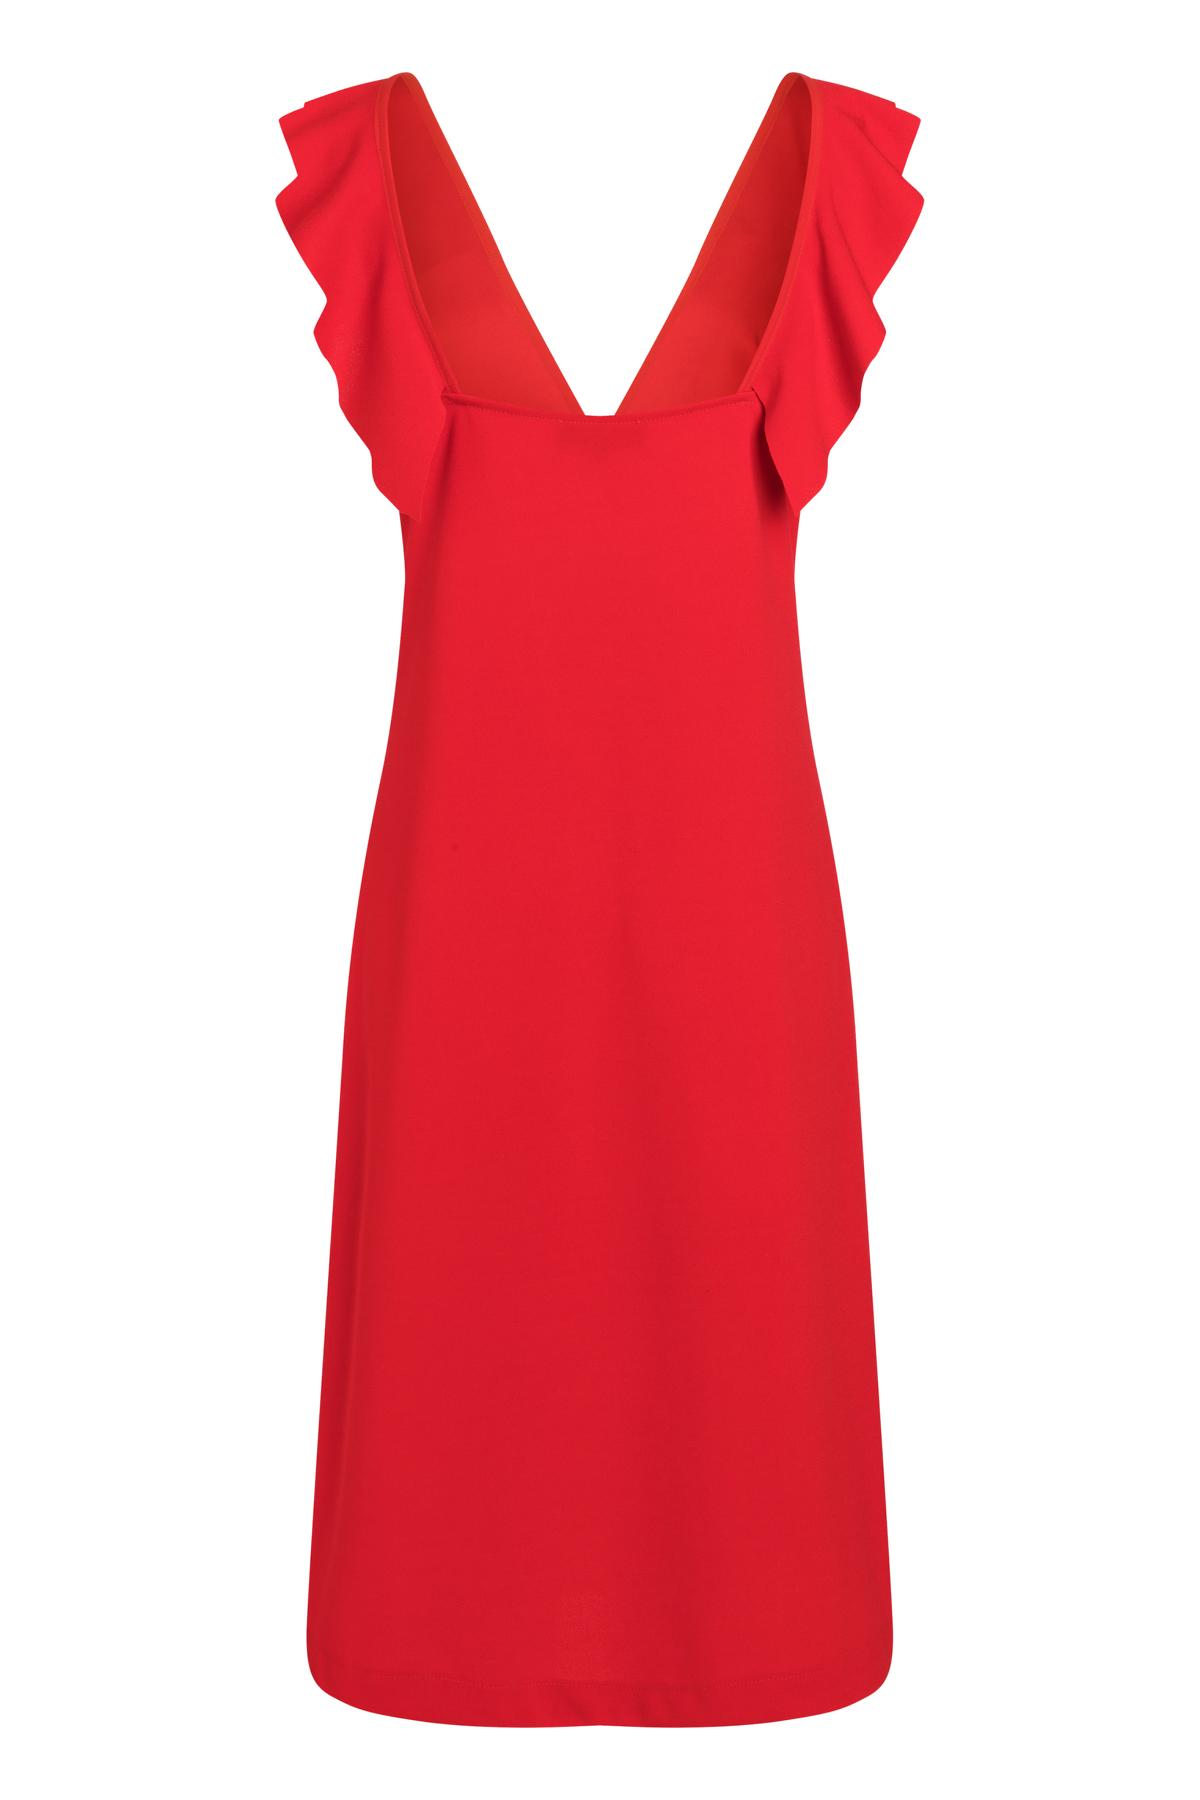 PRODUCT_PICTURE_PRE_7Ana Alcazar Flamenco Kleid Sawona Red PRODUCT_PICTURE_SUF_7